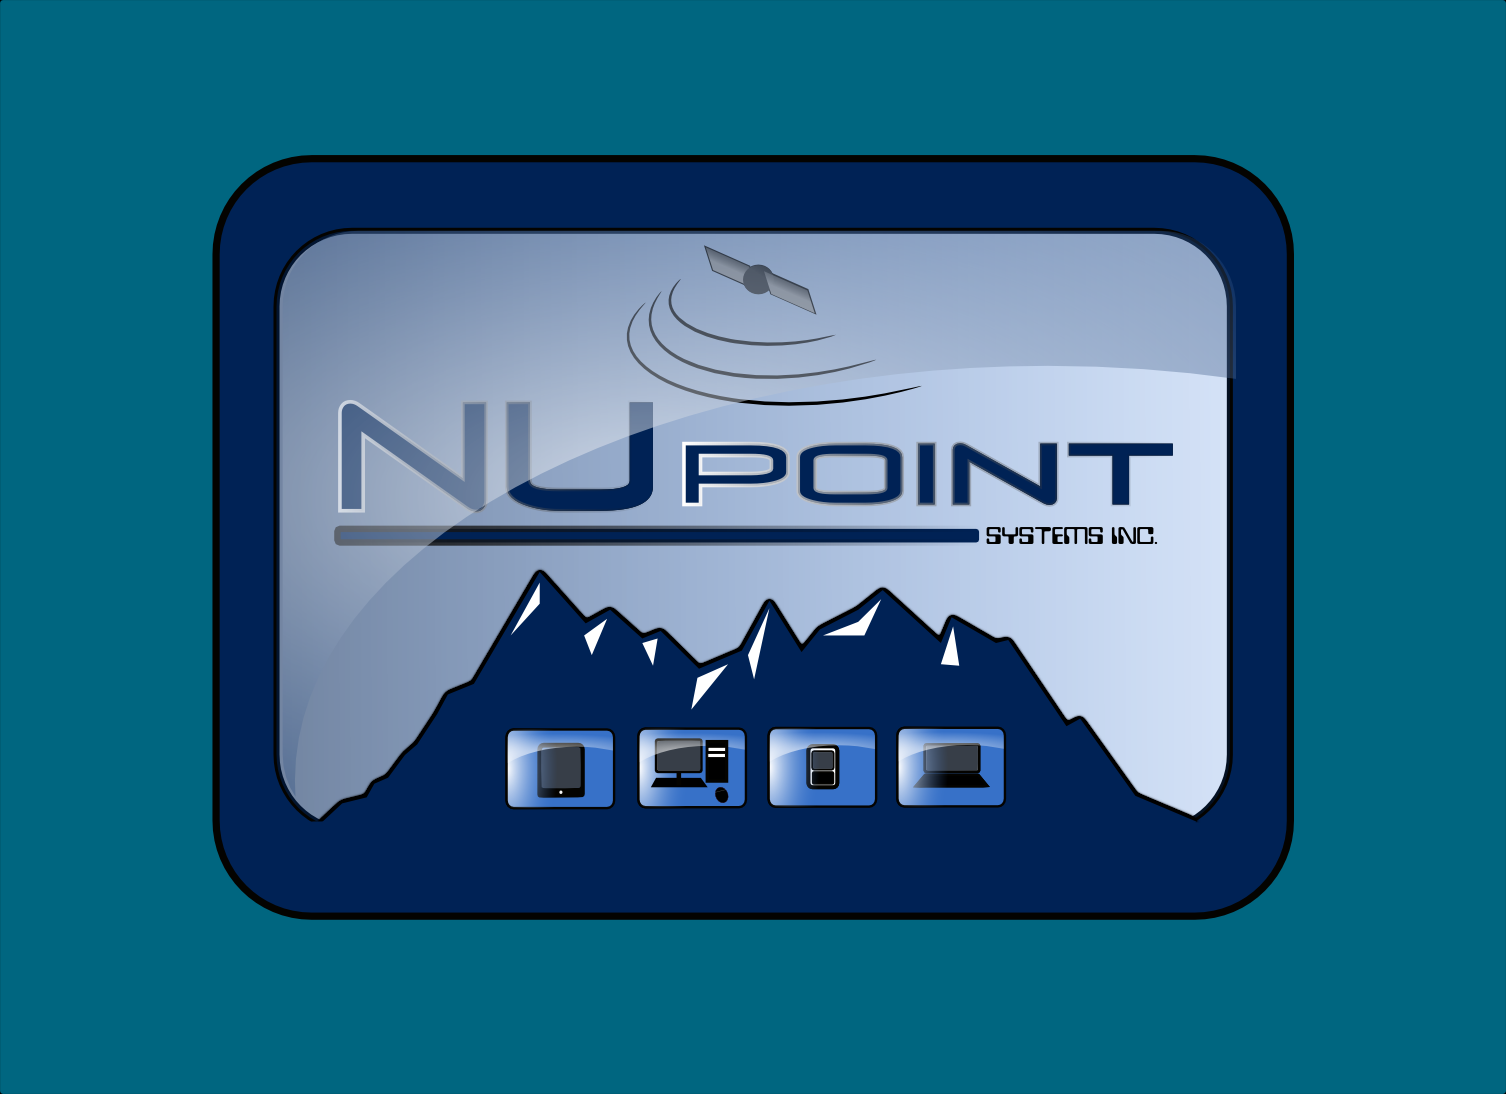 Logo Design by Joseph calunsag Cagaanan - Entry No. 35 in the Logo Design Contest Unique Logo Design Wanted for Nupoint Systems Inc..